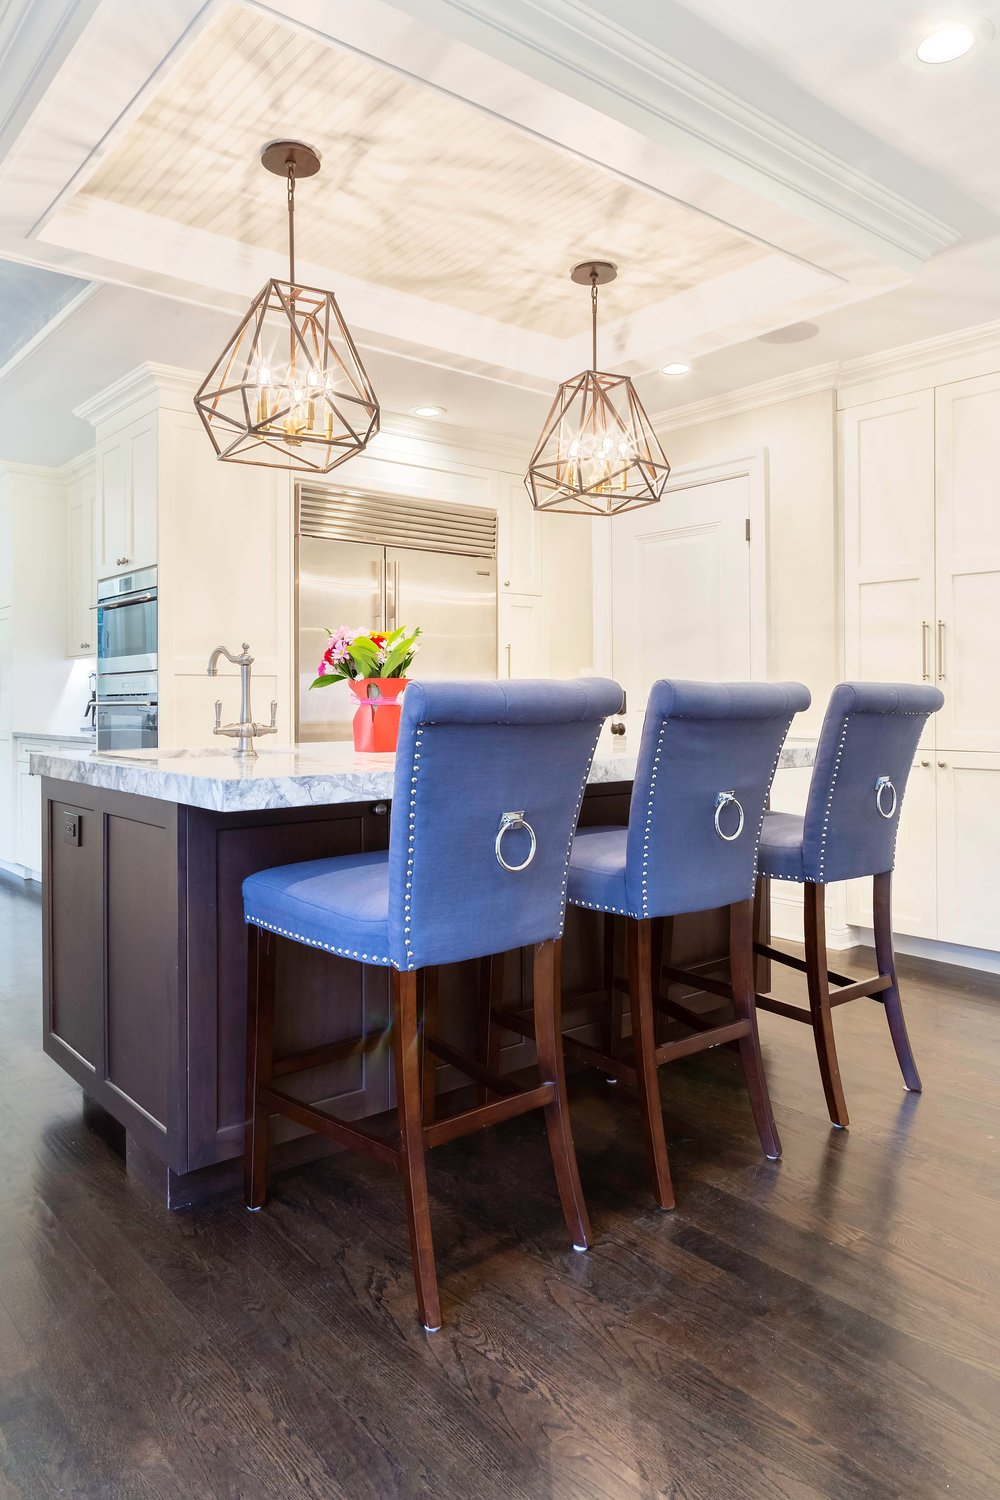 Kitchen island with tall stools in transitional style kitchen